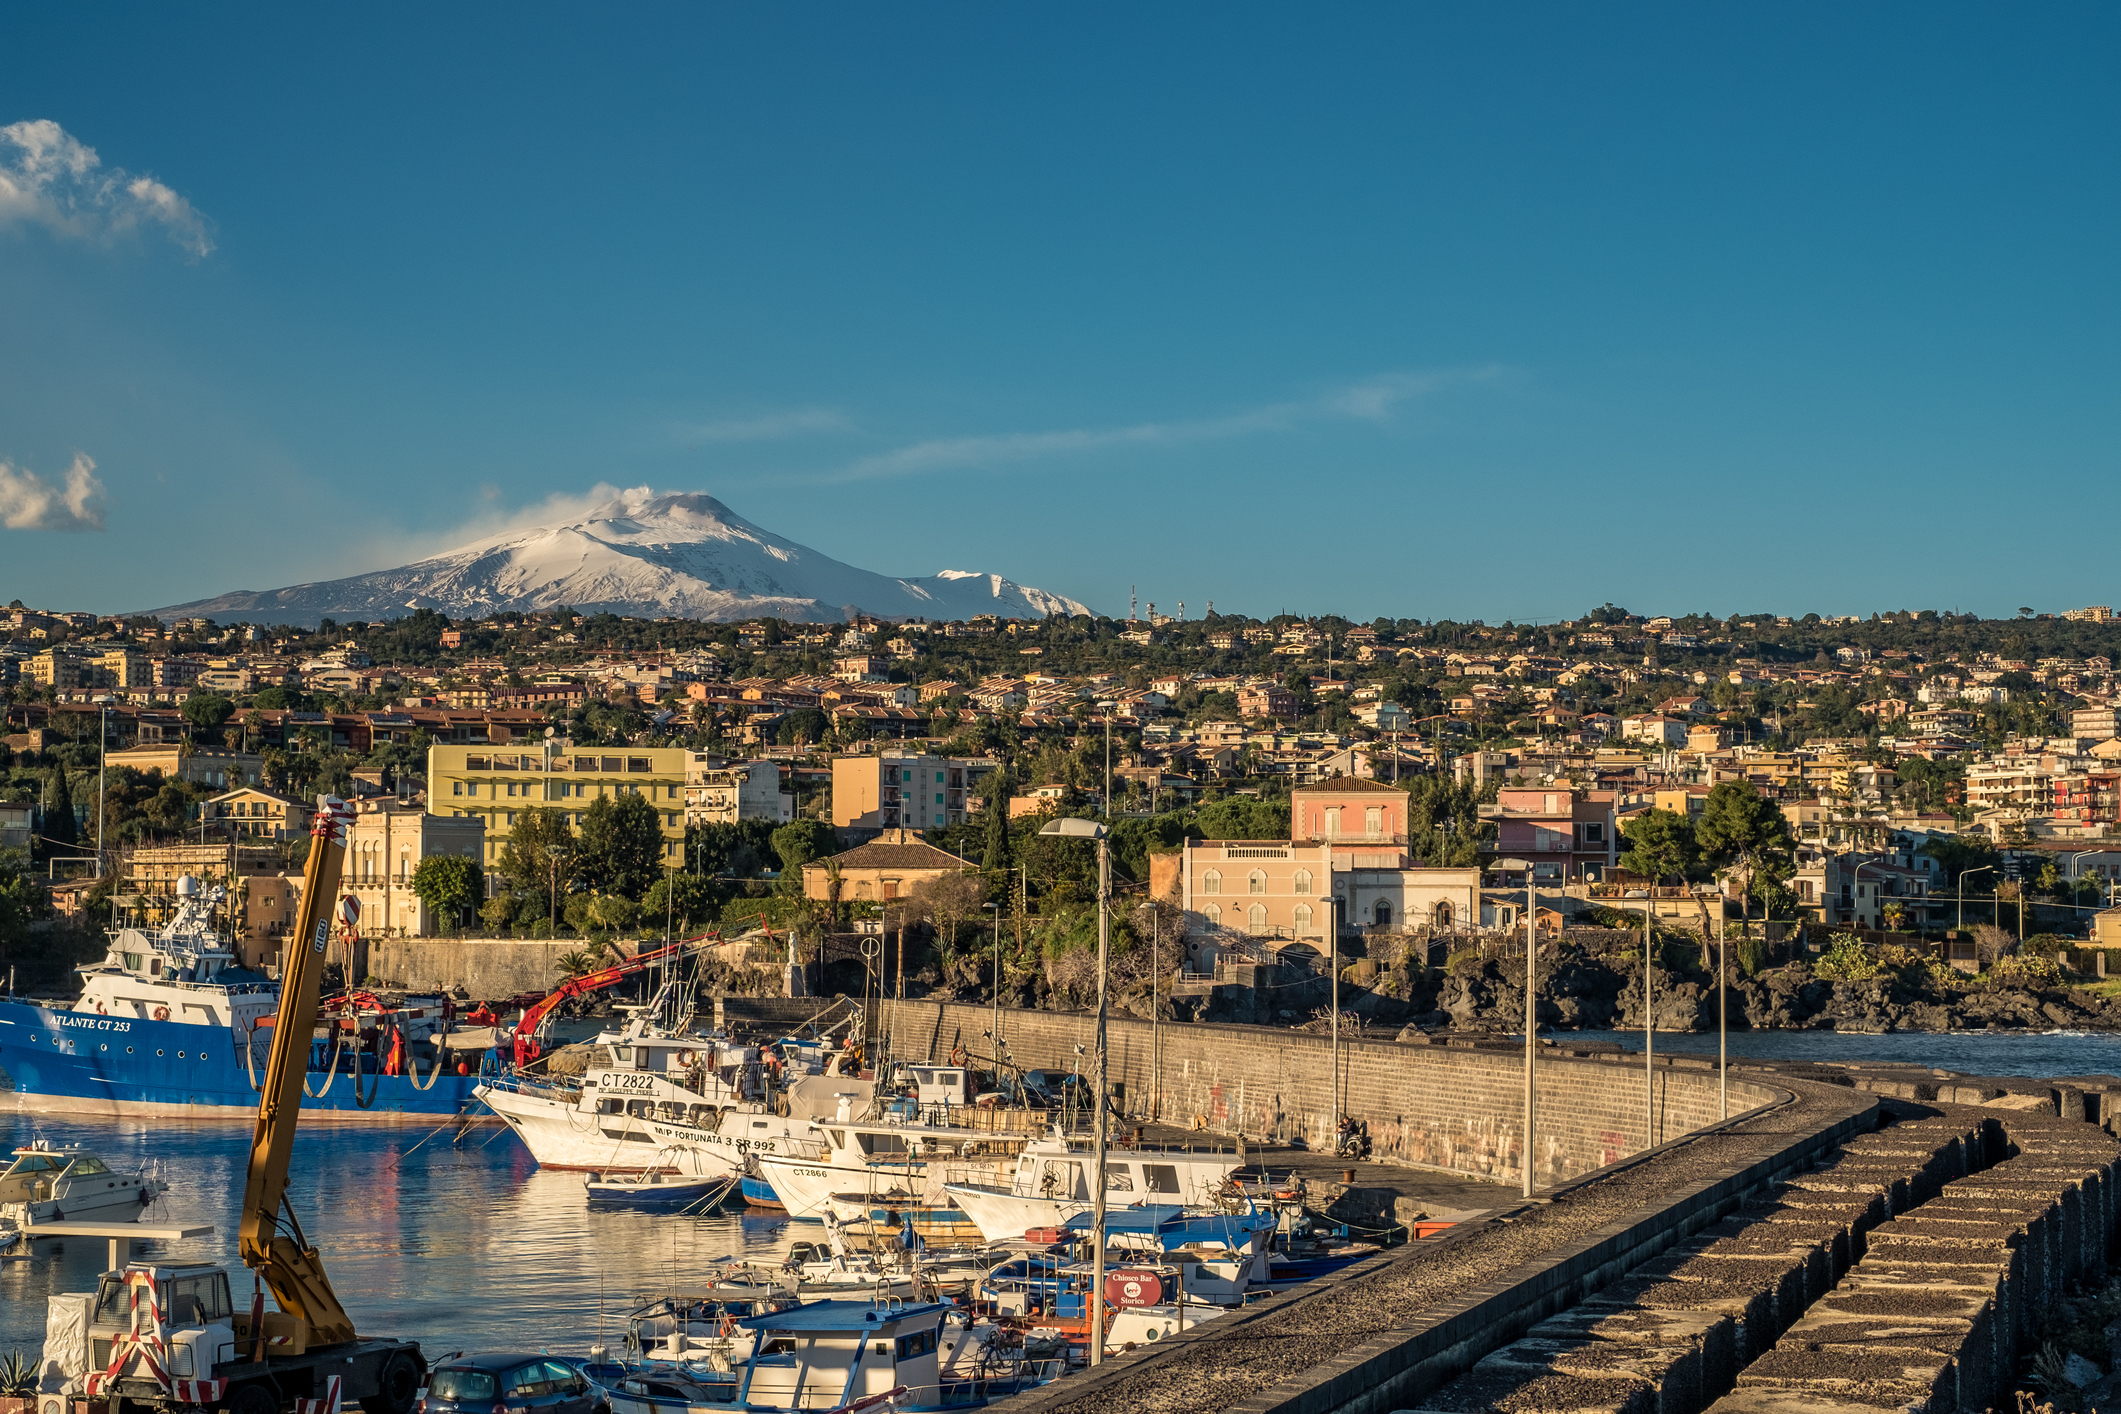 The Etna volcano viewed from Ognina.